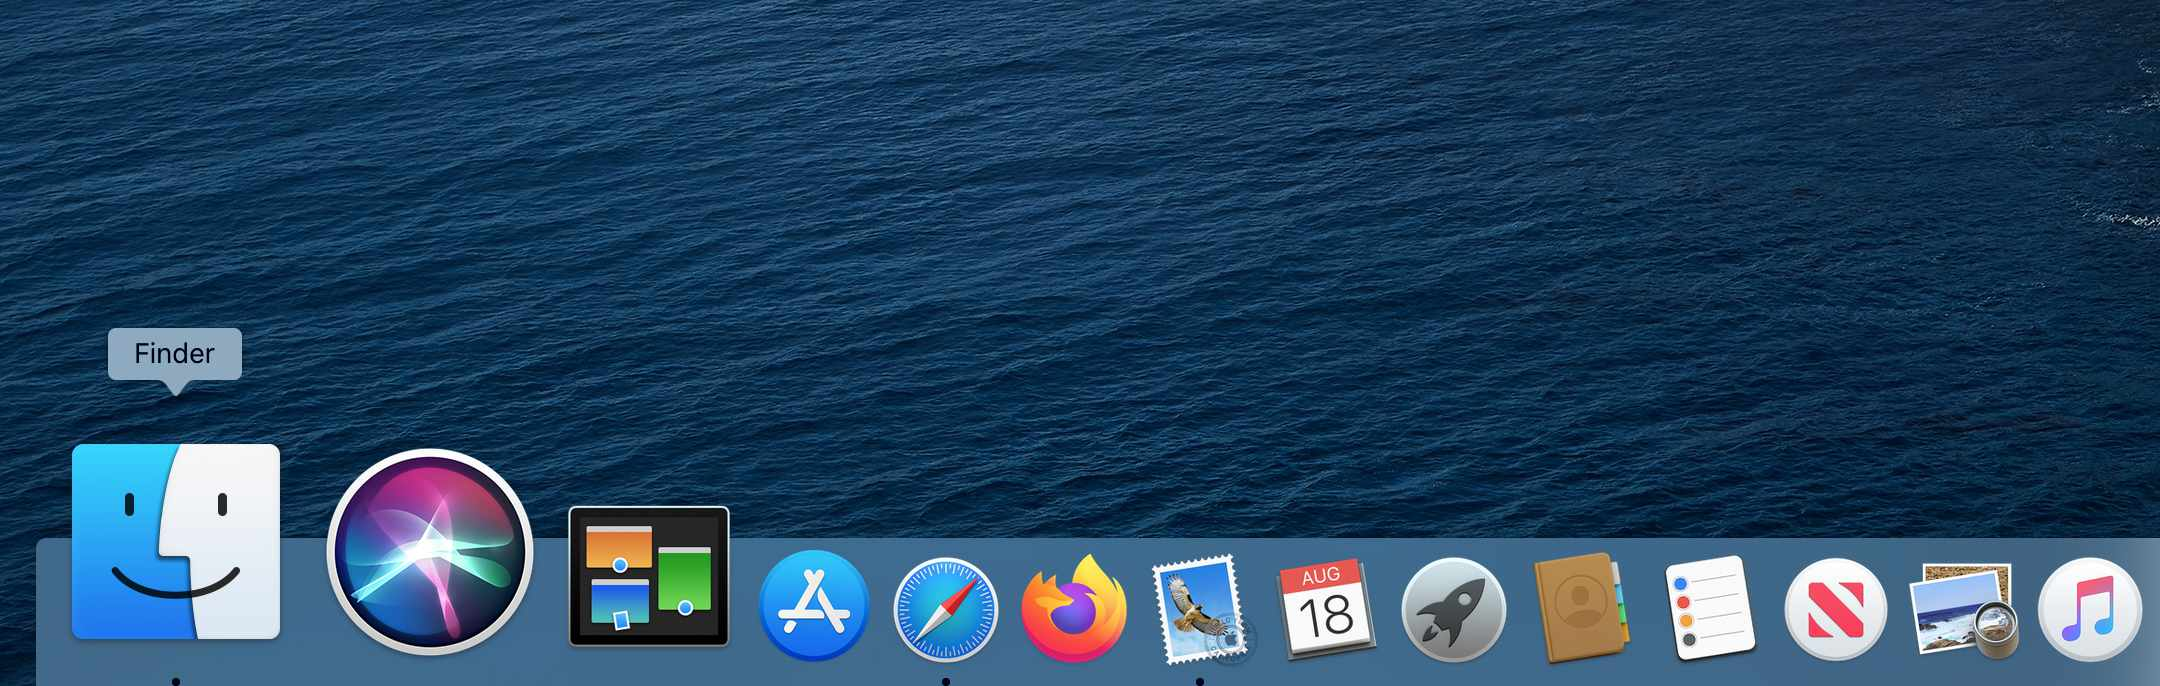 Finder icon in Mac Dock